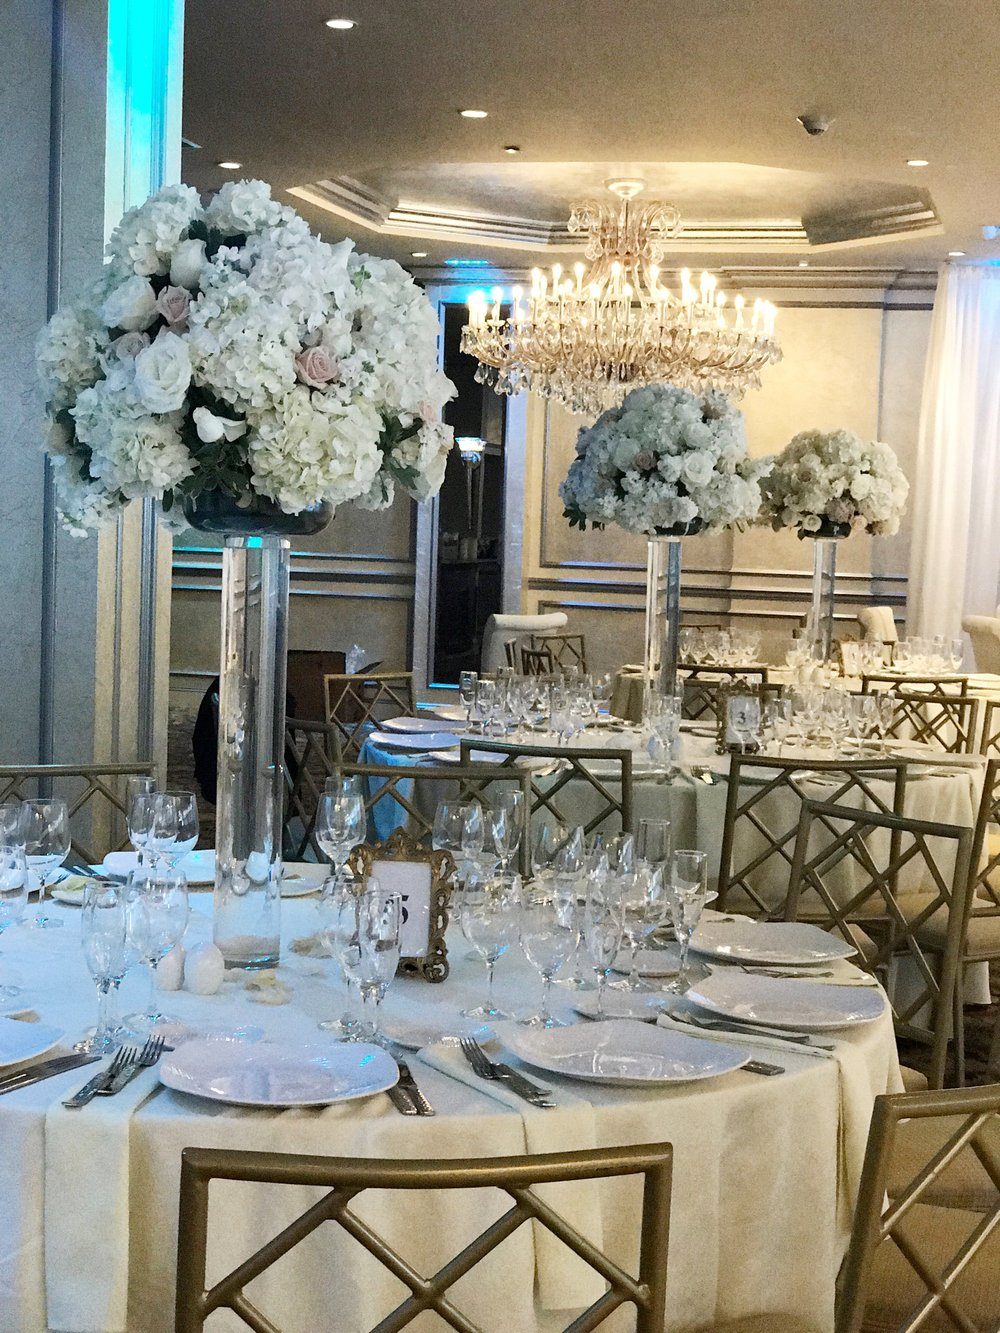 Evelisa Floral & Design: tall white arrangement